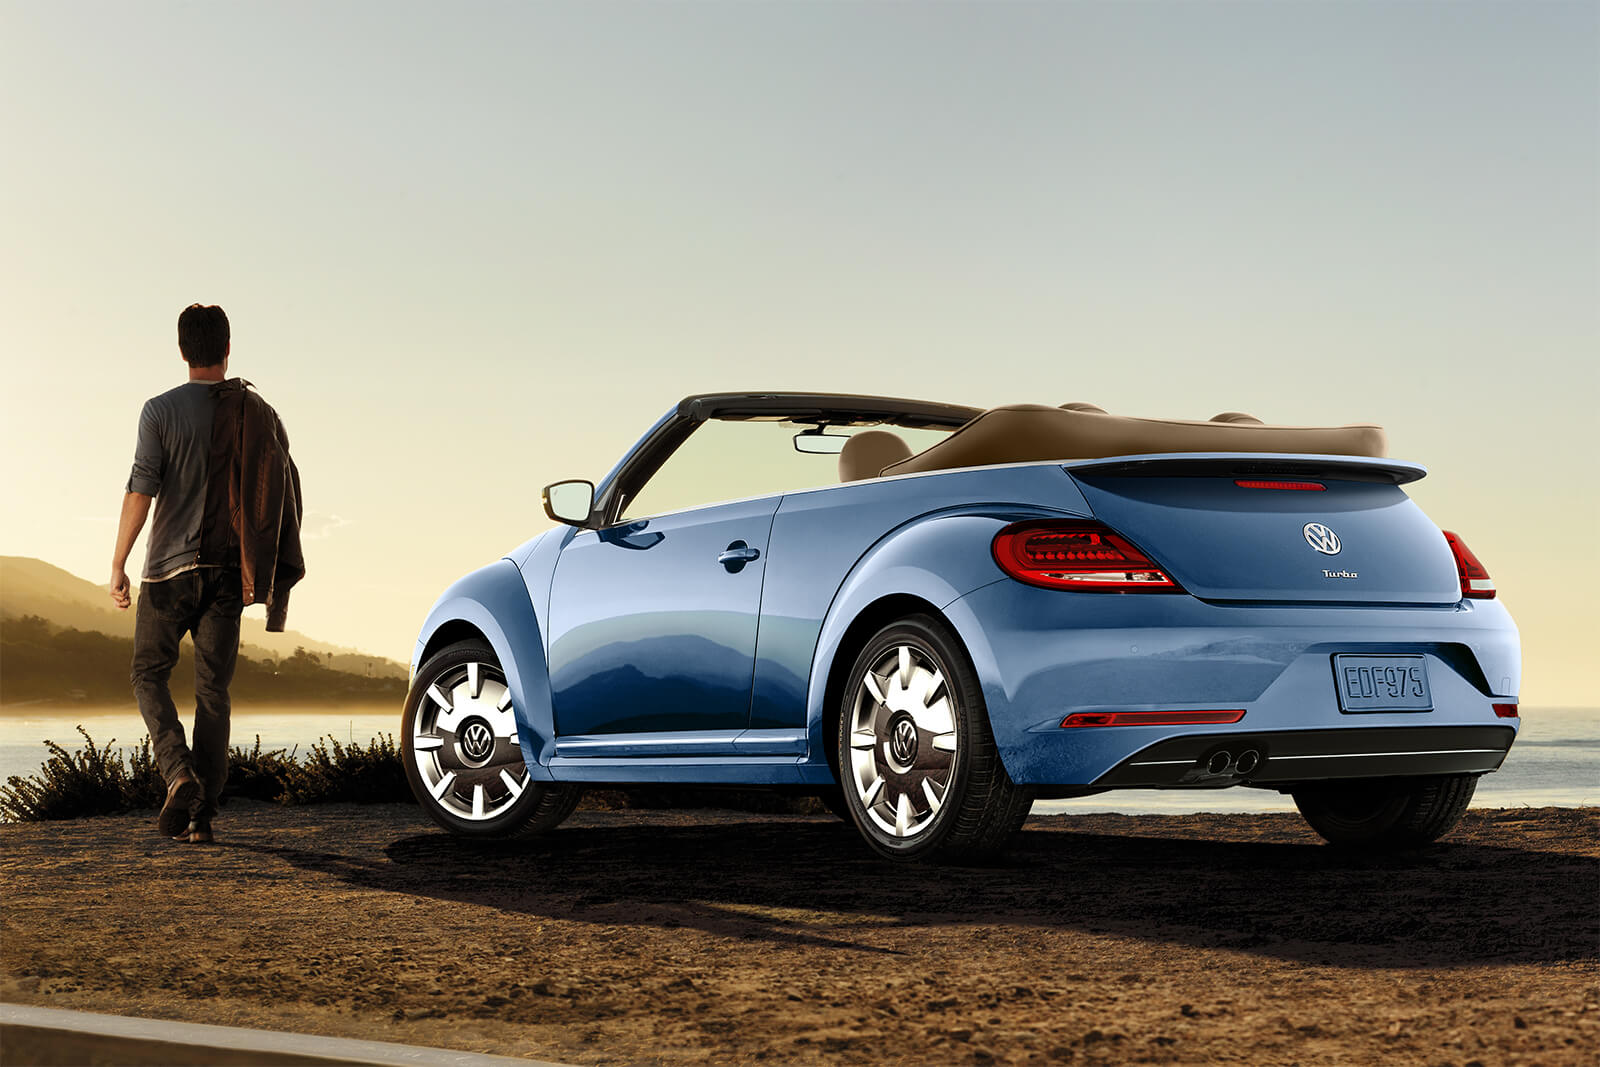 2019 Volkswagen Beetle Convertible Silk Blue Metallic Exterior Rear